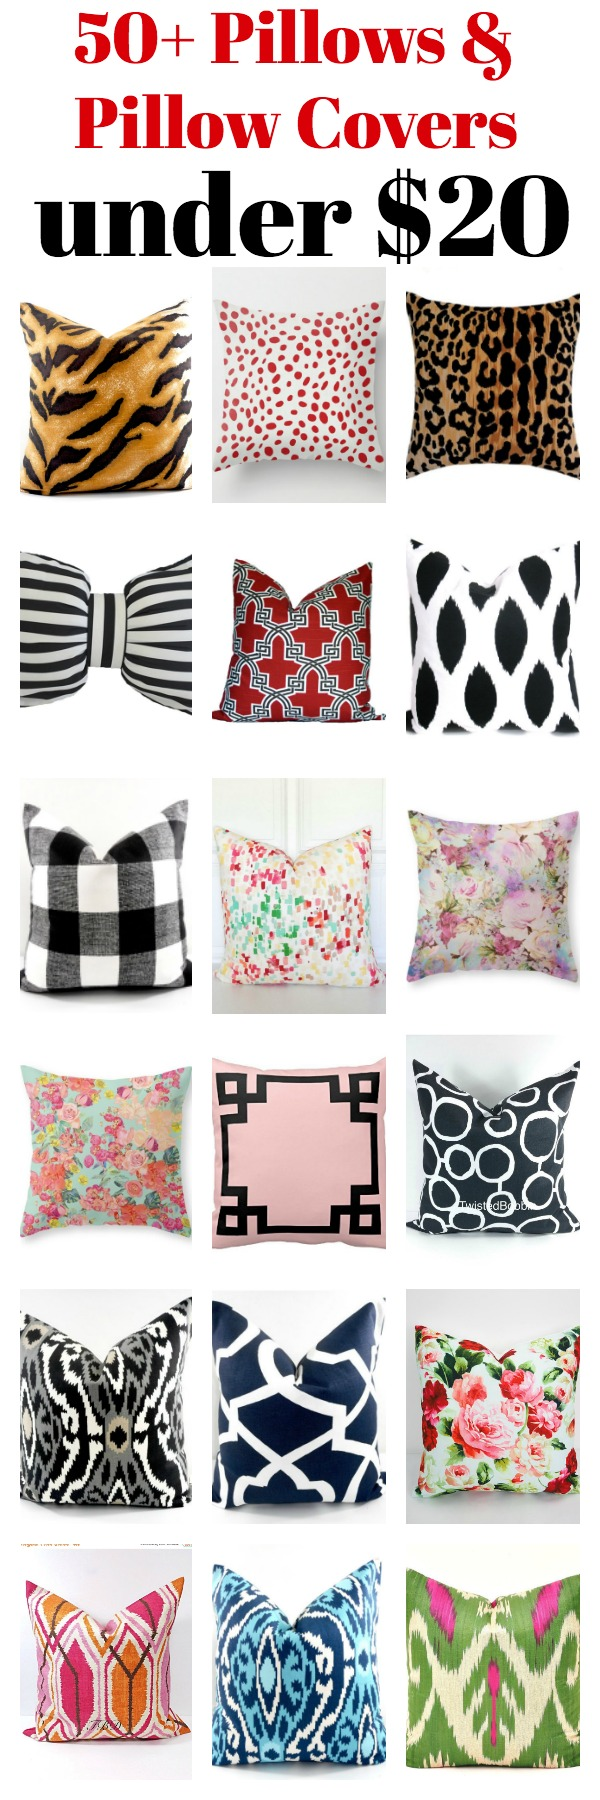 50+ Pillow Covers and Pillows Under $20